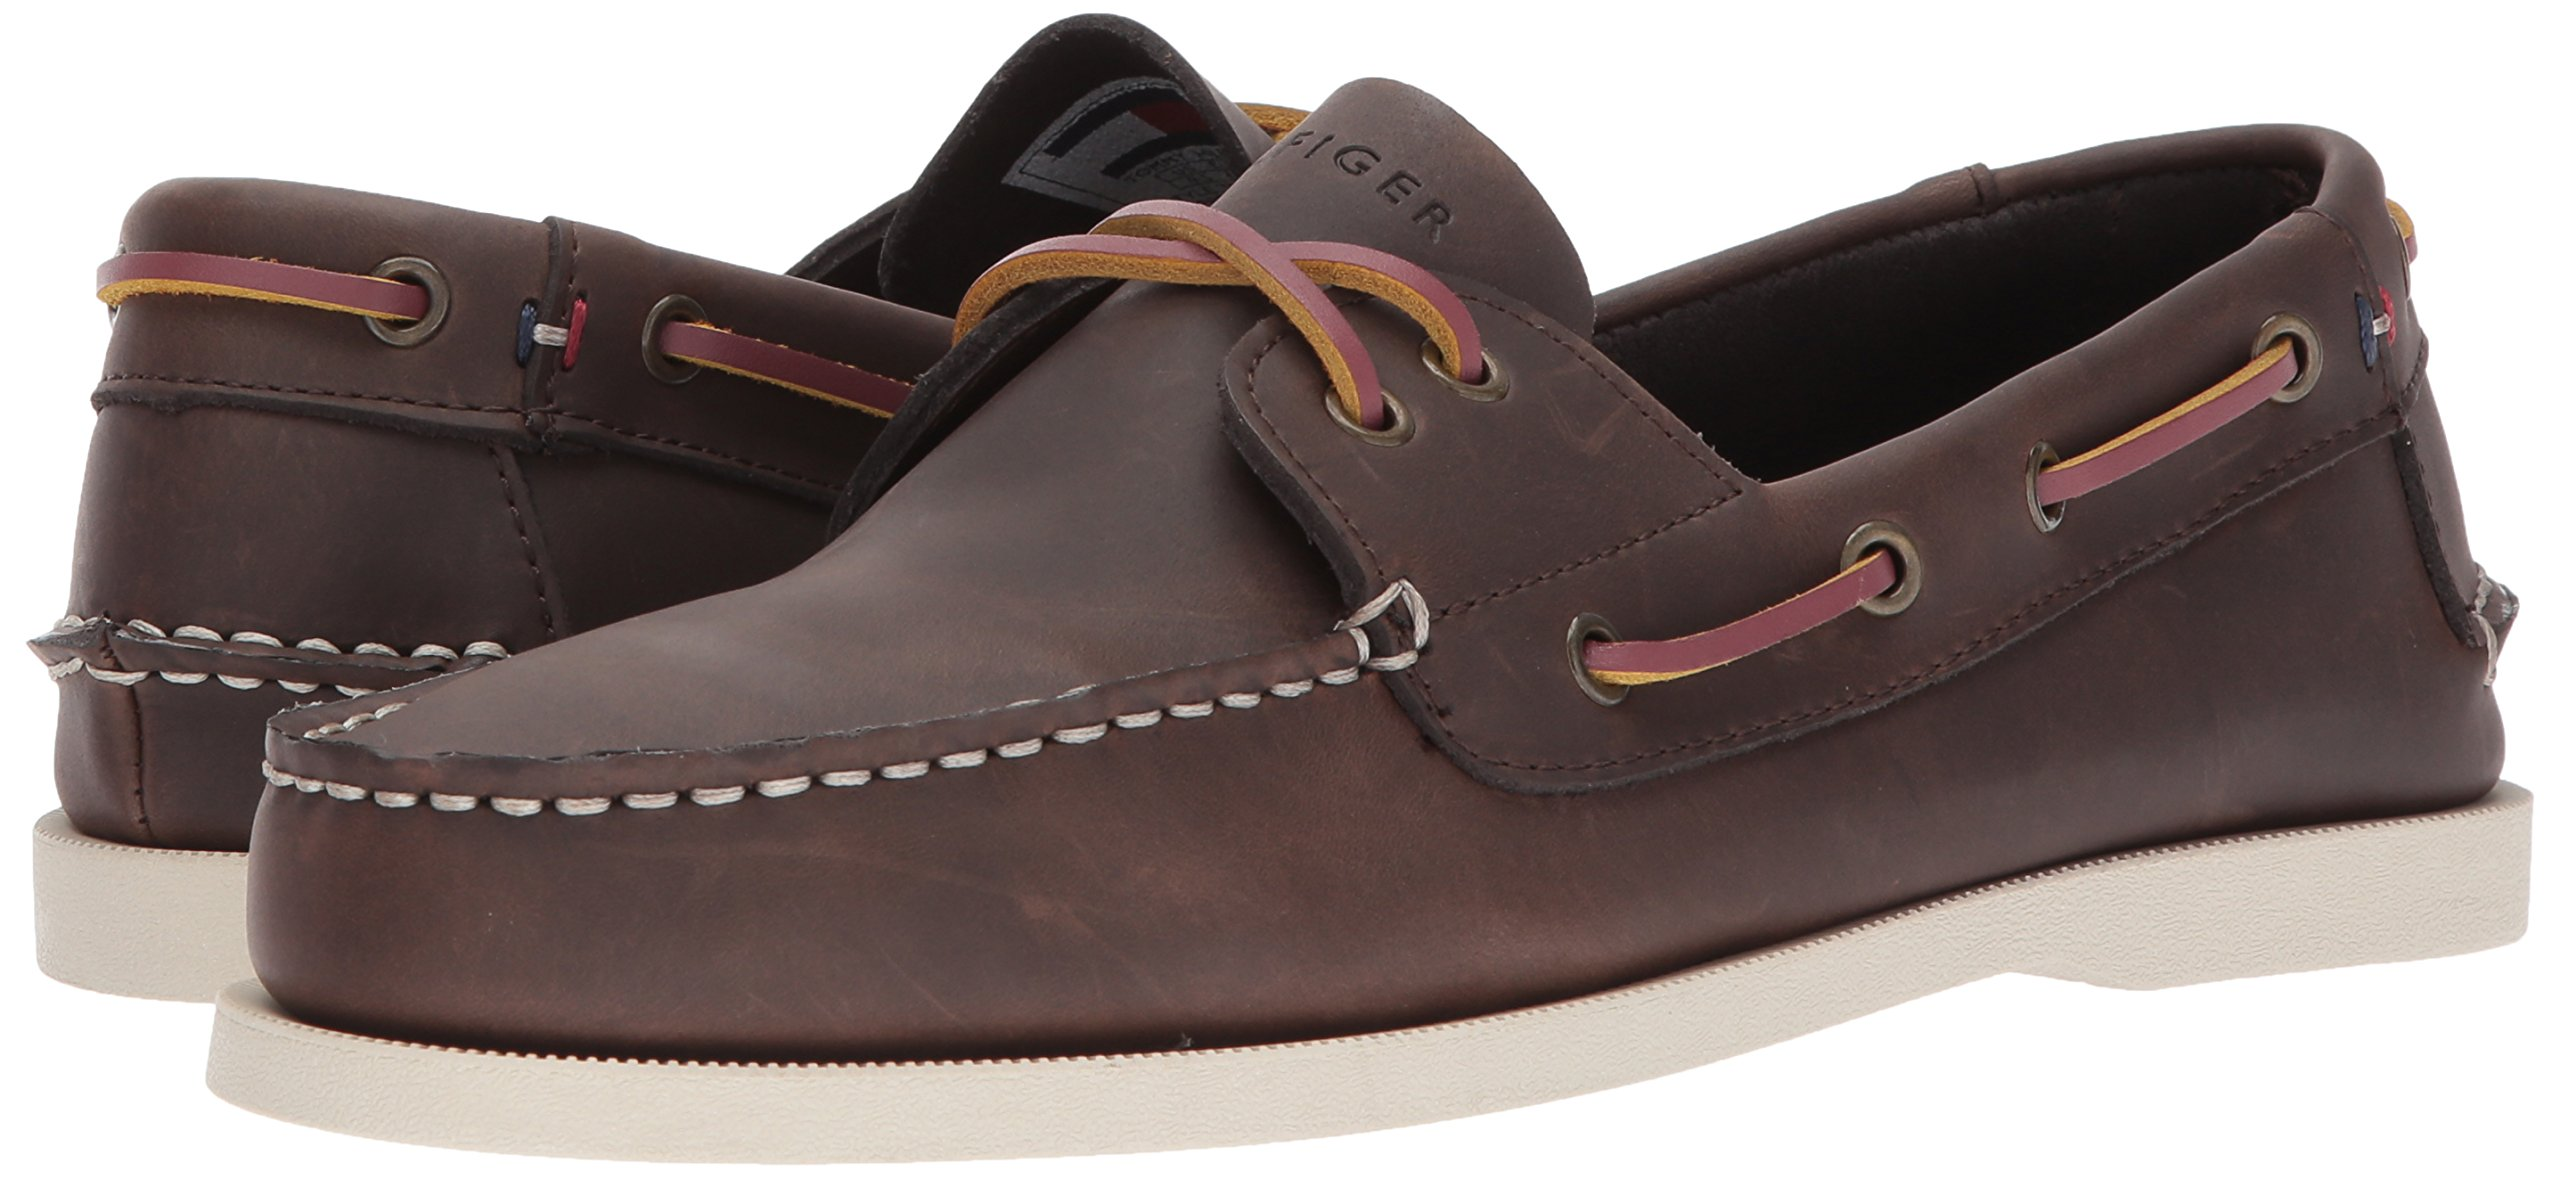 Tommy Hilfiger Men's Bowman Boat shoe,Coffee Bean,8.5 M US by Tommy Hilfiger (Image #6)